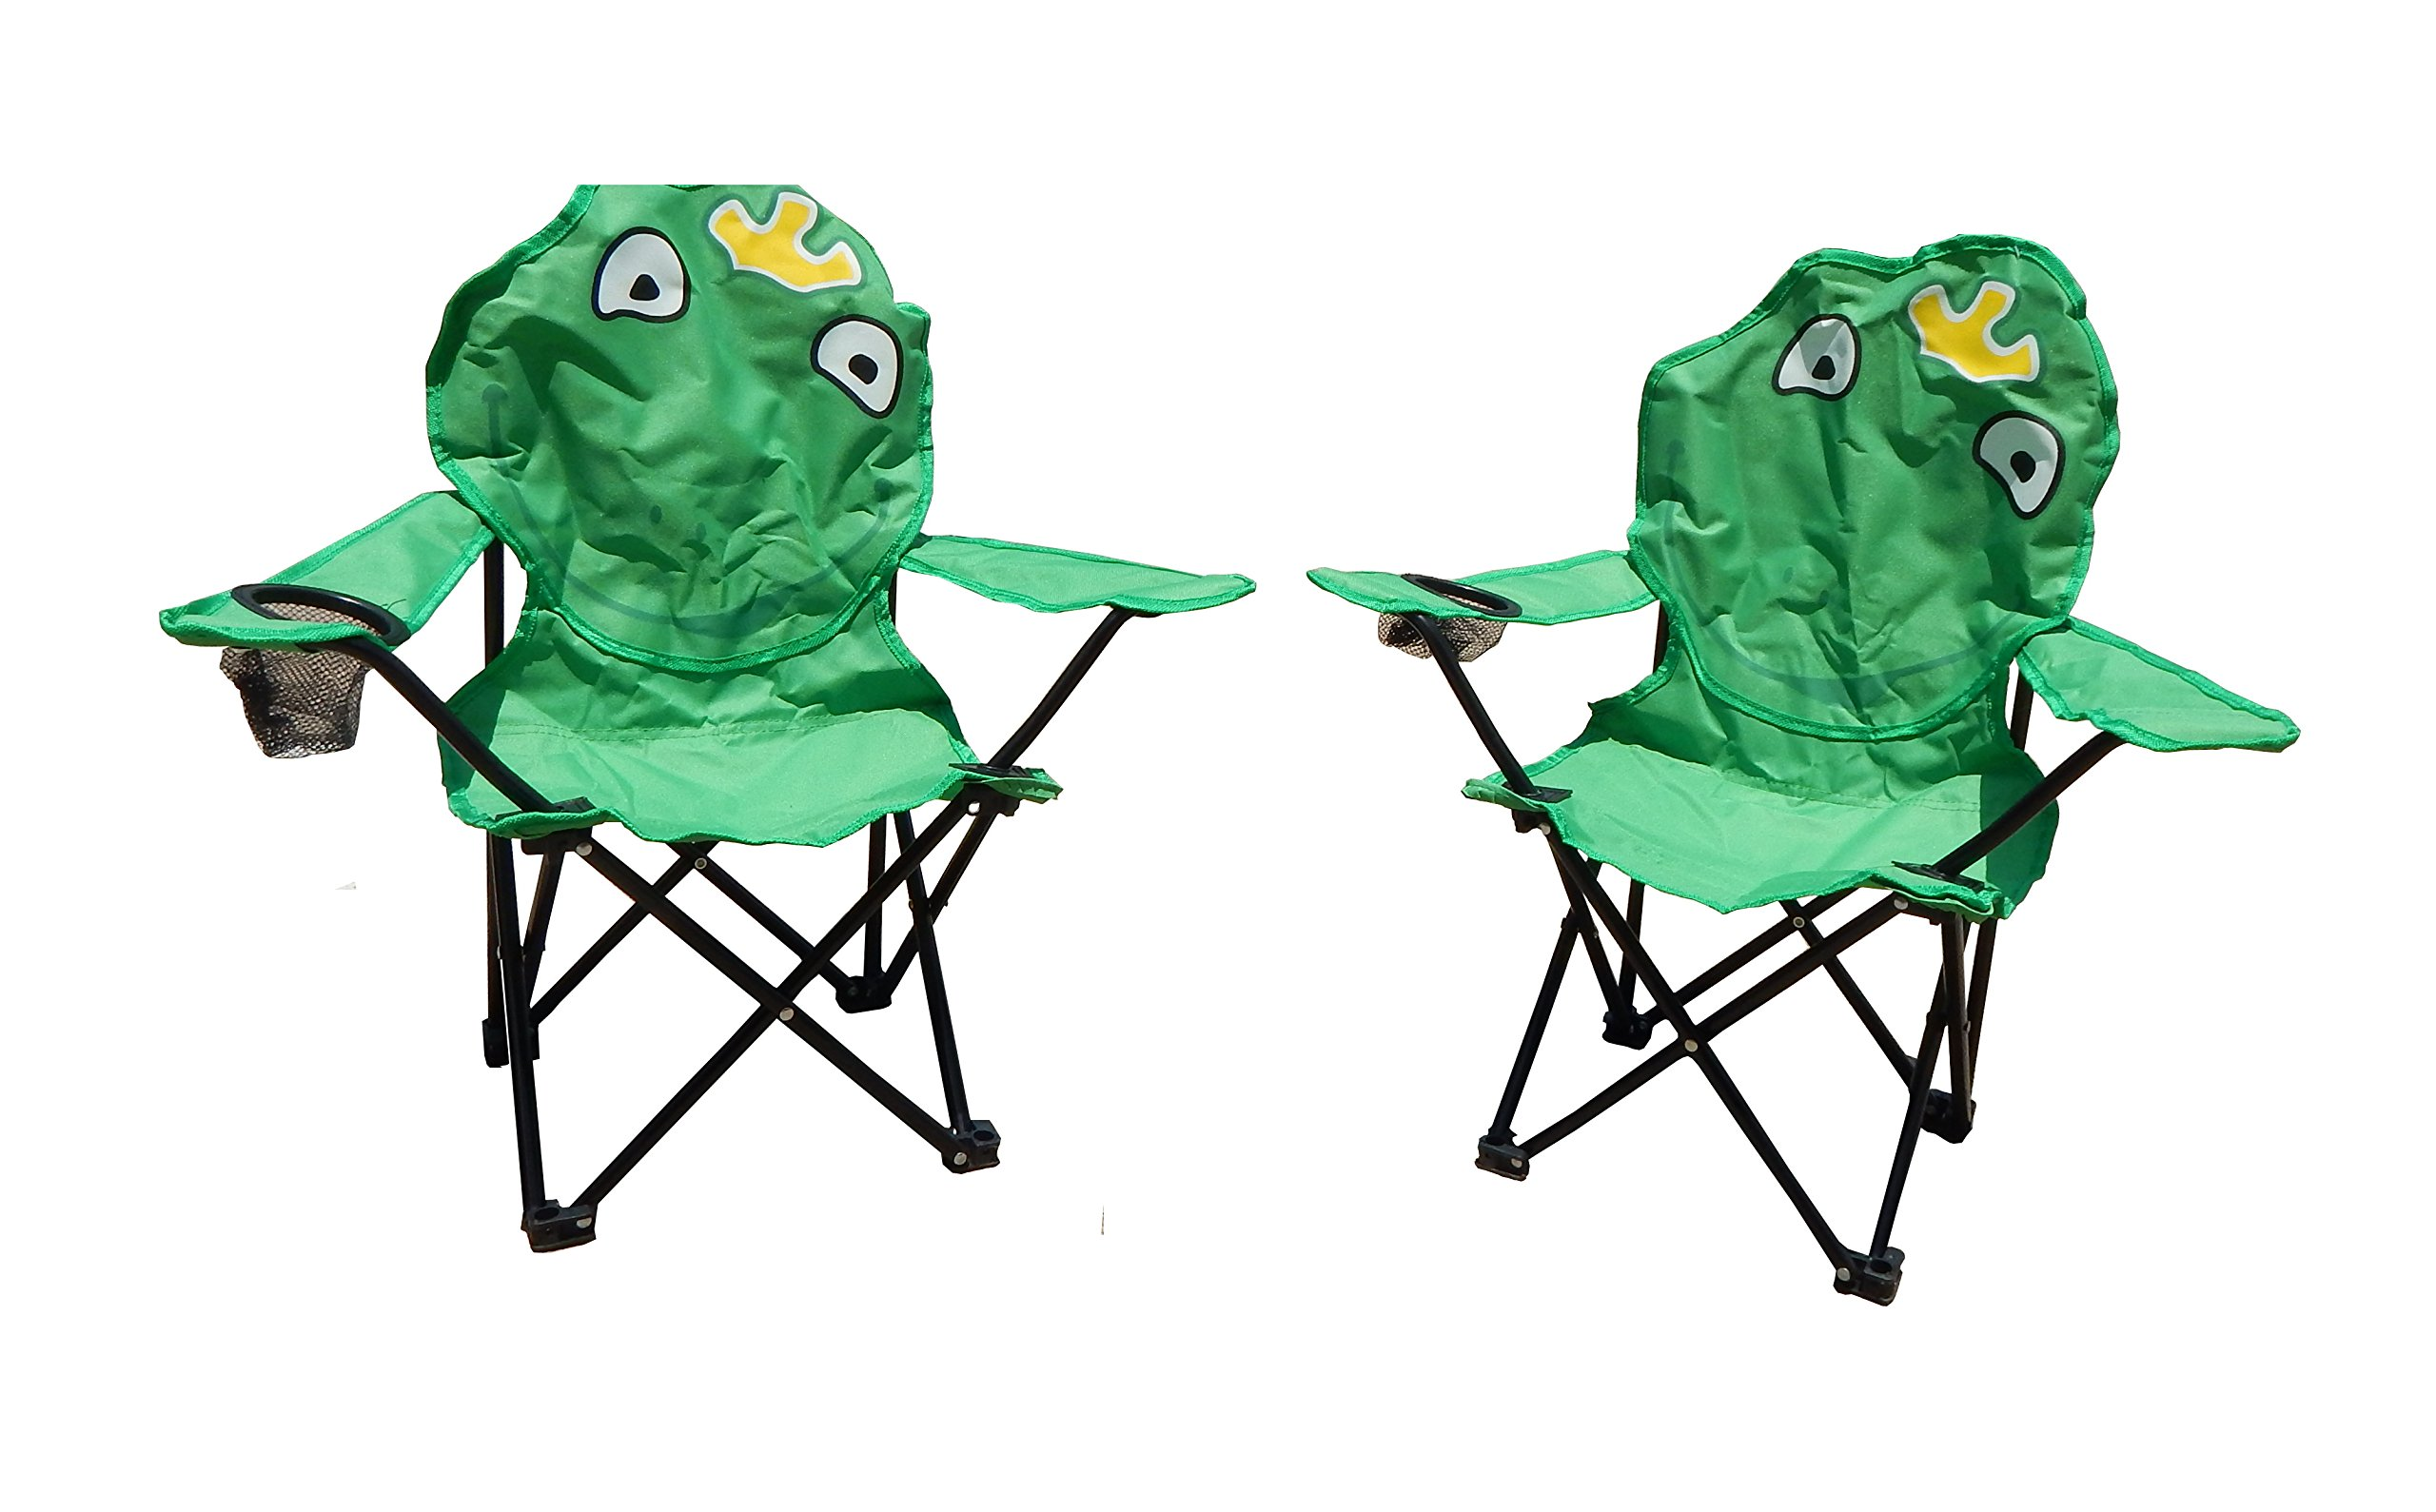 Folding Kids Camping Chairs in Animal Designs by J&Y Home & Garden (Set of 2) by MAOS (Image #3)